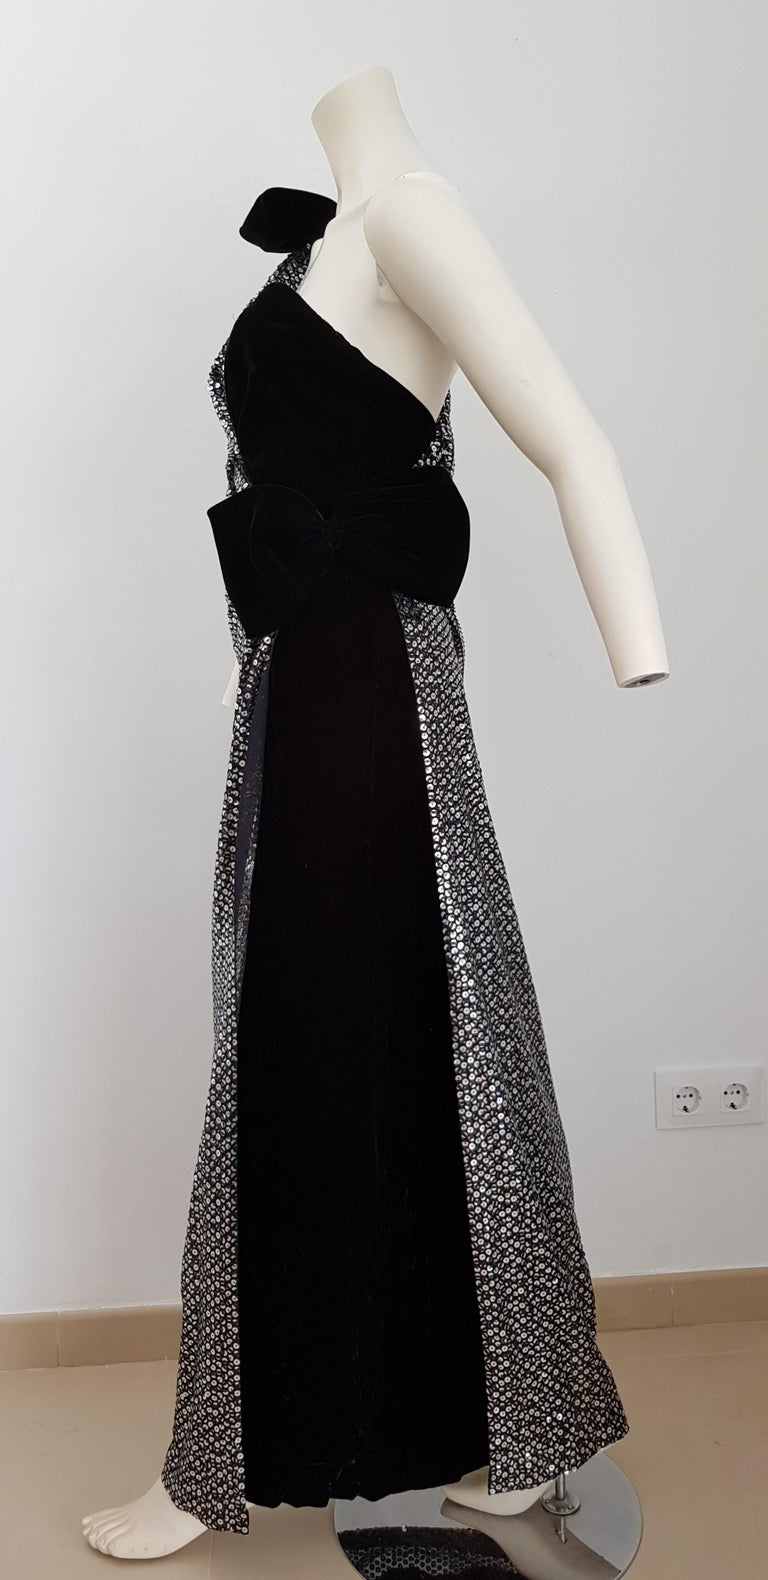 Black VALENTINO Haute Couture, sequins, silk velvet, black gown dress - Unworn, New For Sale